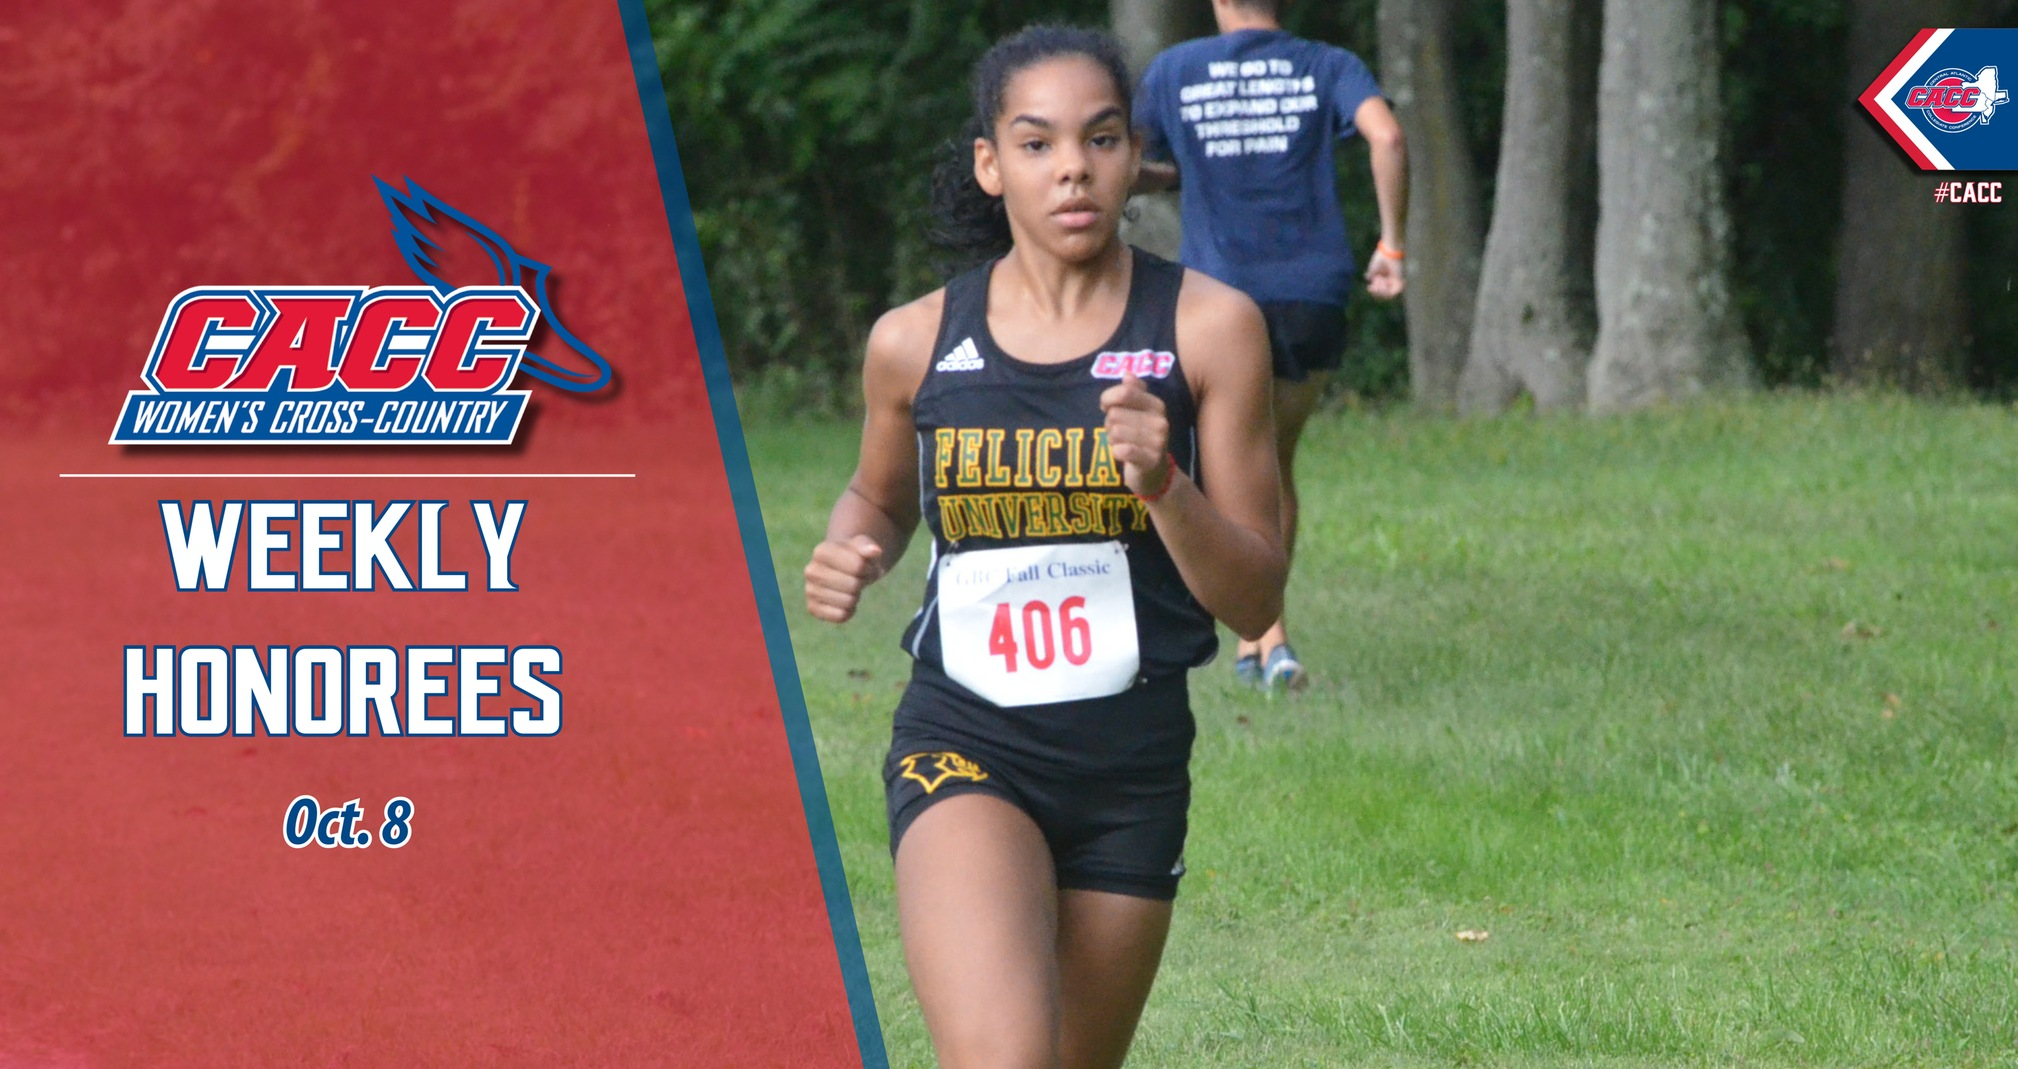 CACC Women's Cross Country Weekly Honorees (Oct. 8)